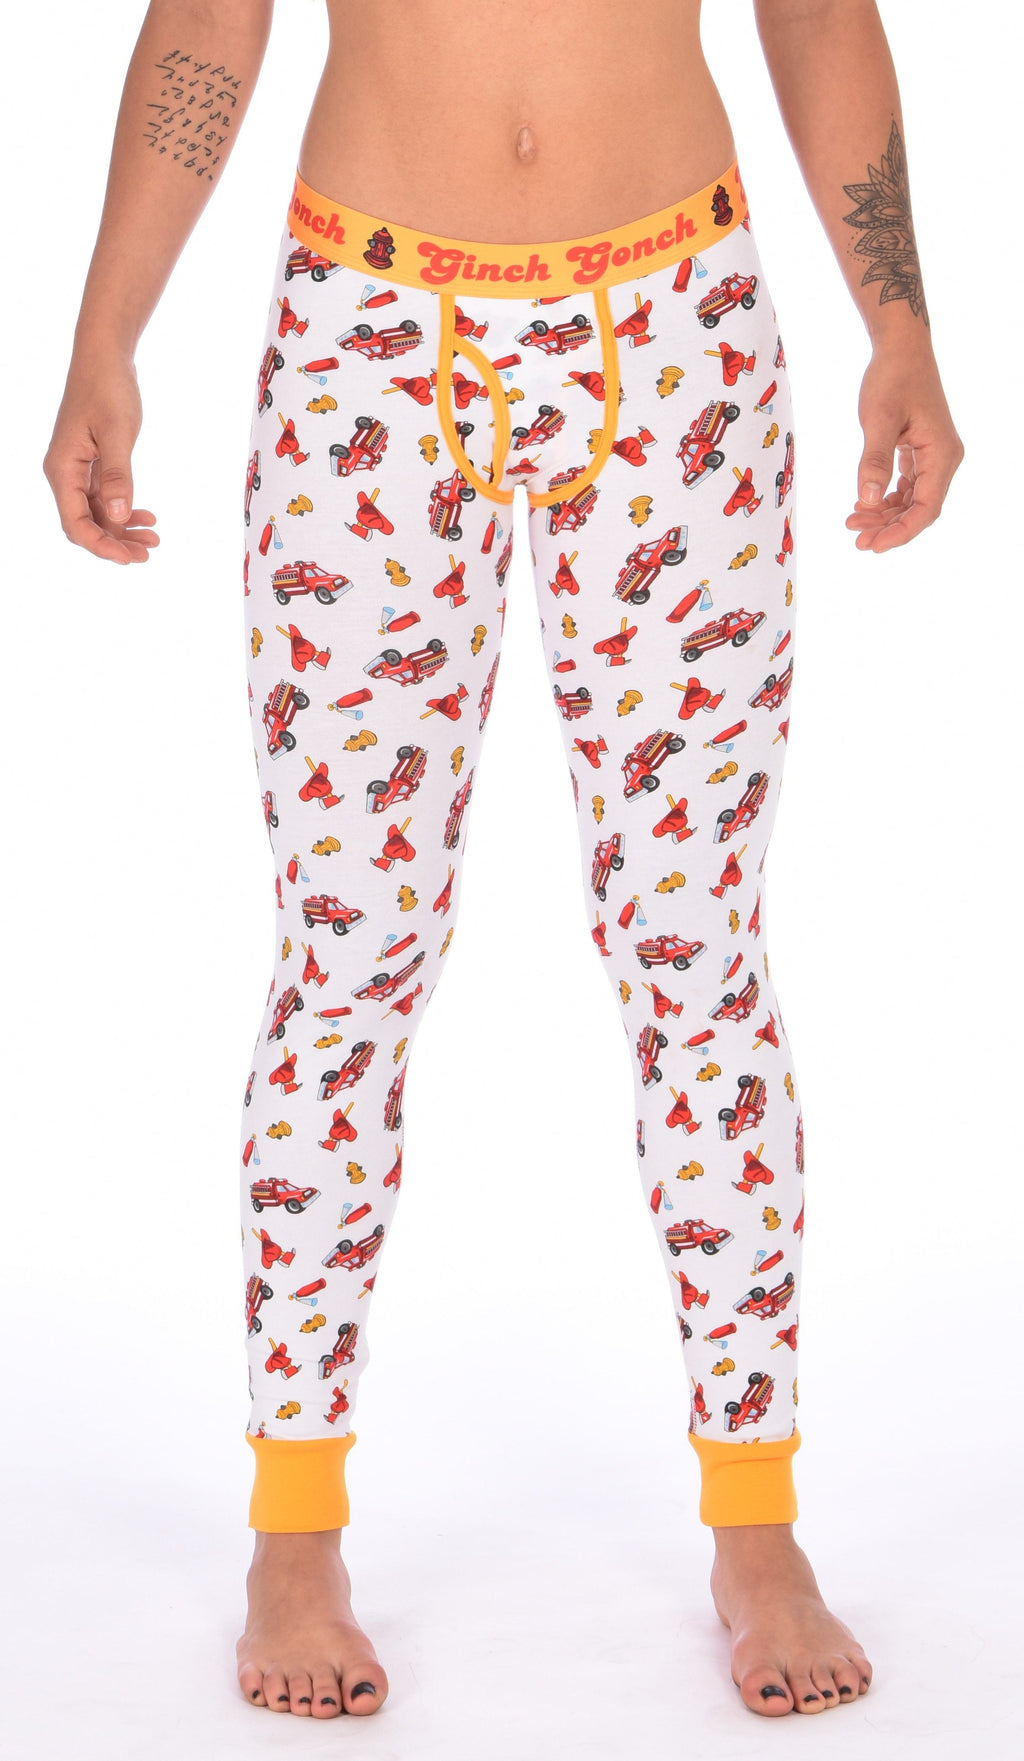 GG Fire Fighters Women's Leggings